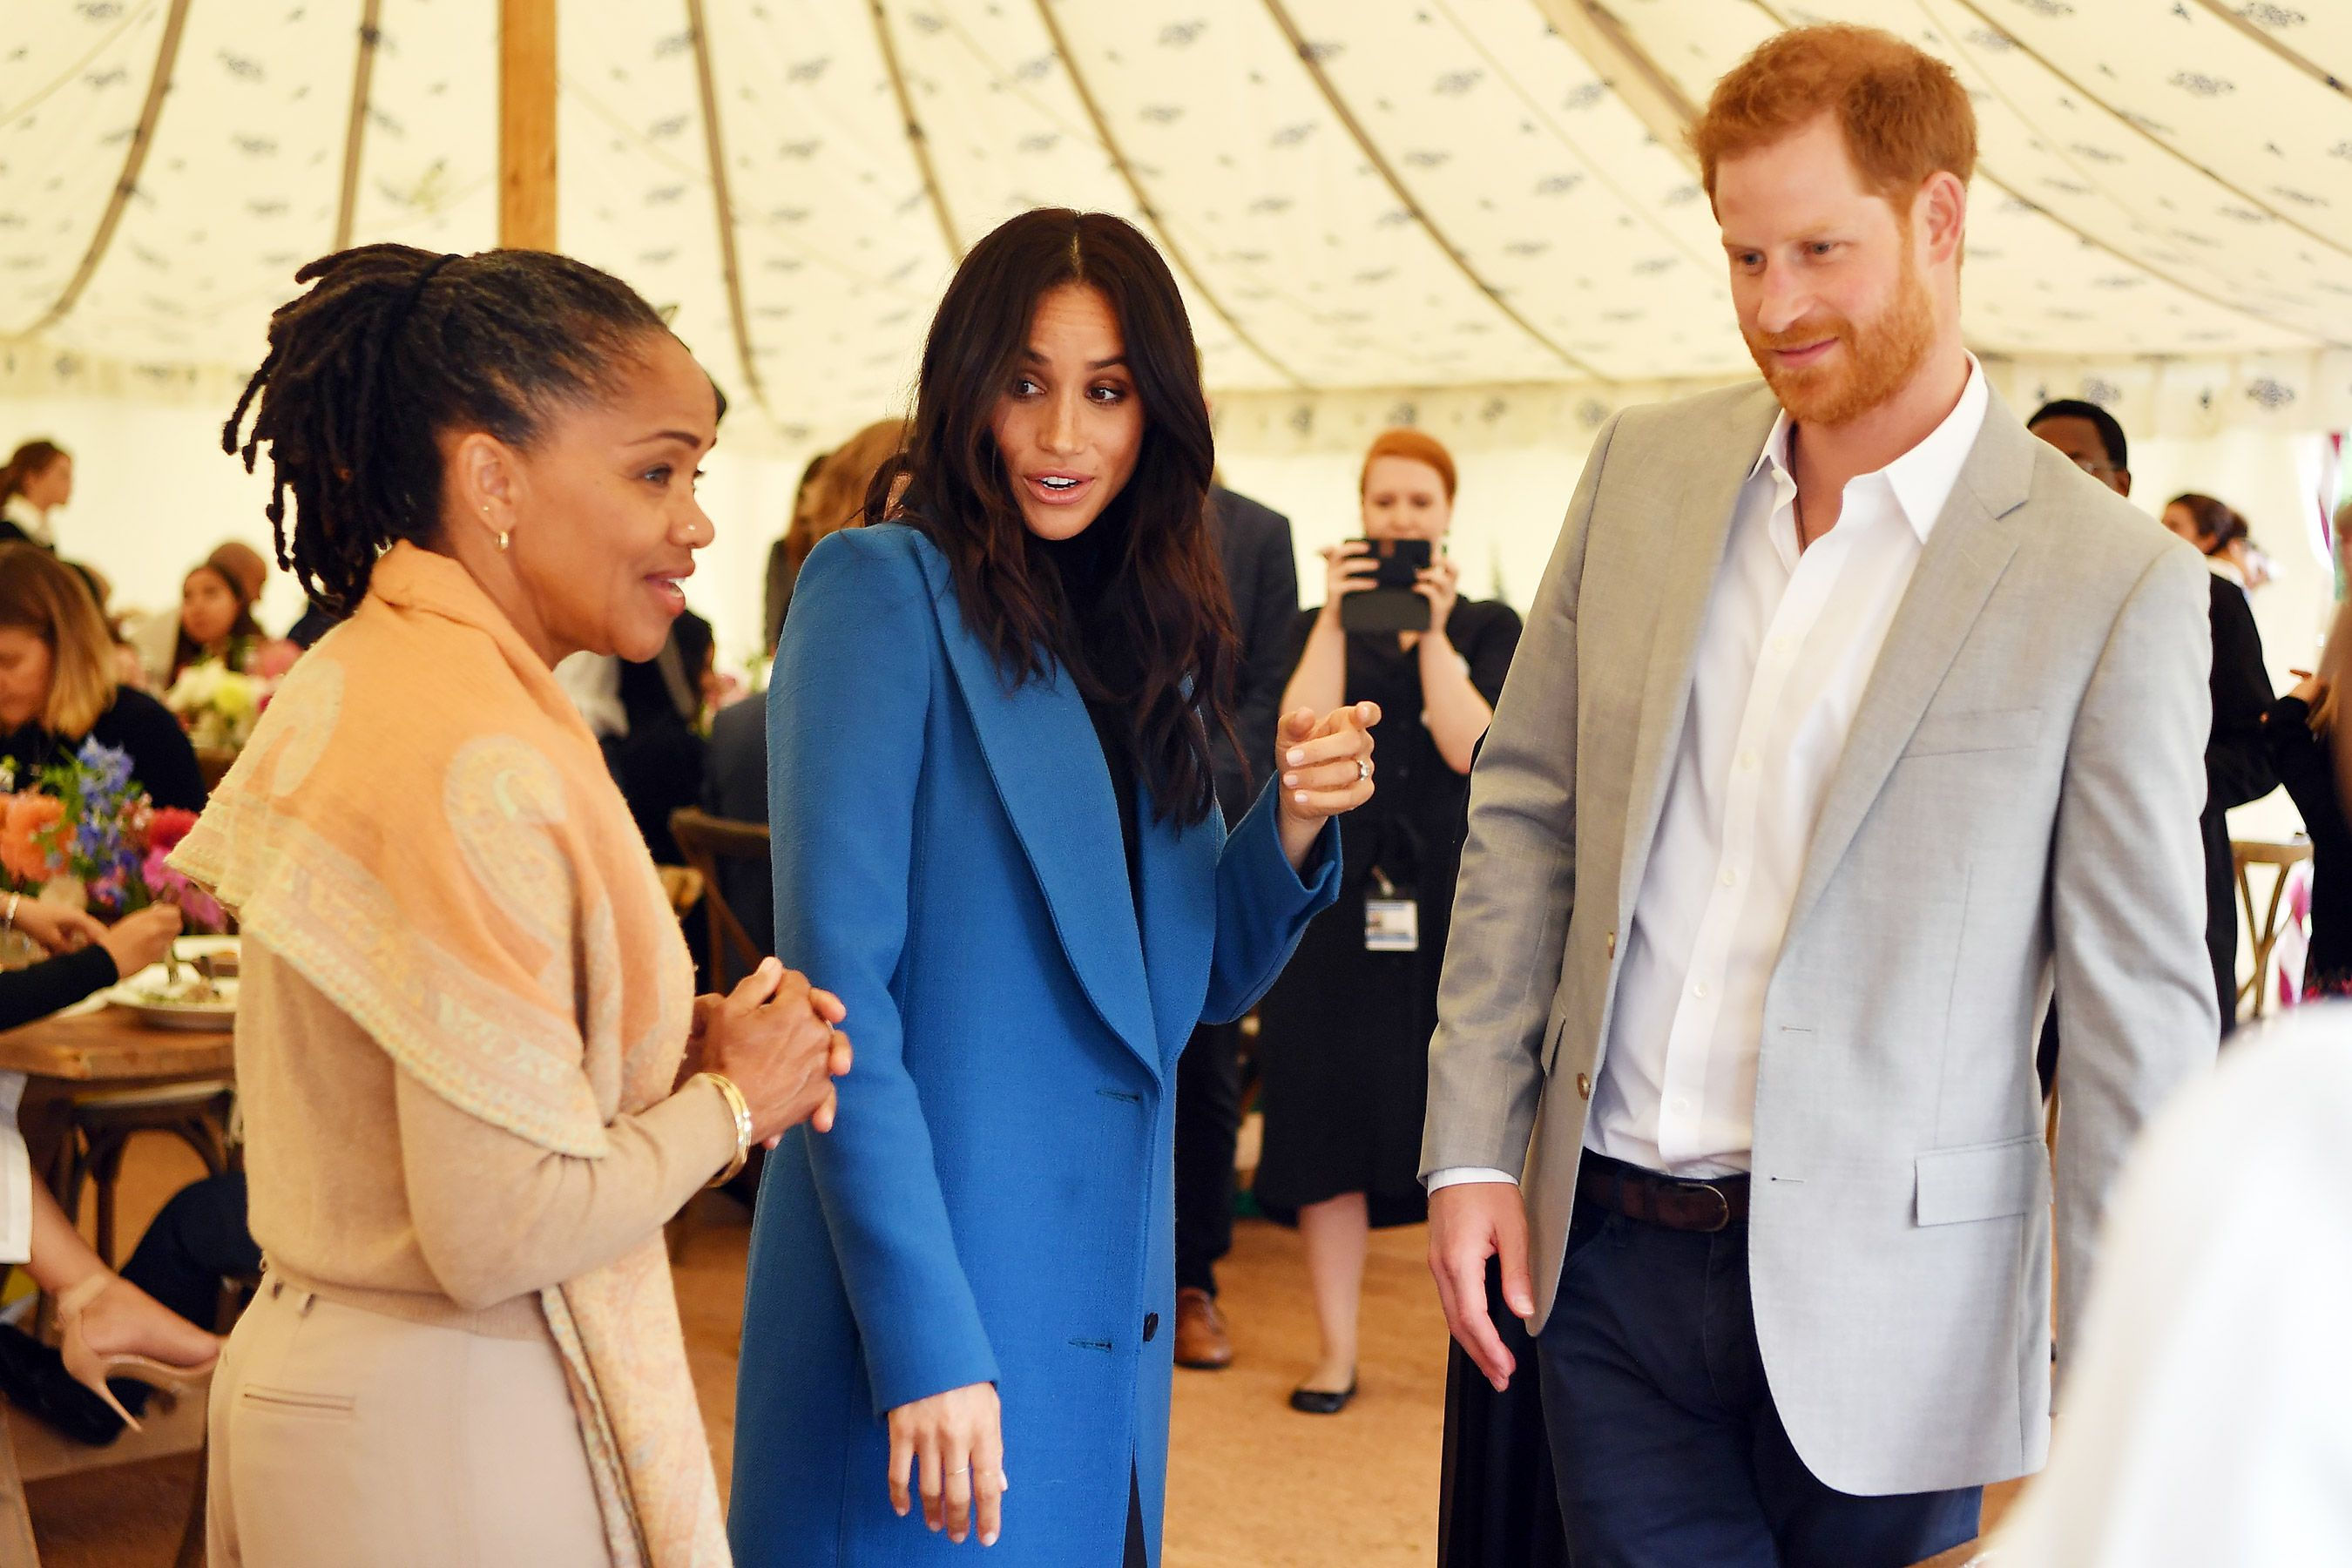 On Thursday, Duchess of Sussex Meghan Markle is joined by Prince Harry and her mother Doria Ragland at the launch of a cookbook written by a group of women affected by the Grenfell Tower fire at Kensington Palace.